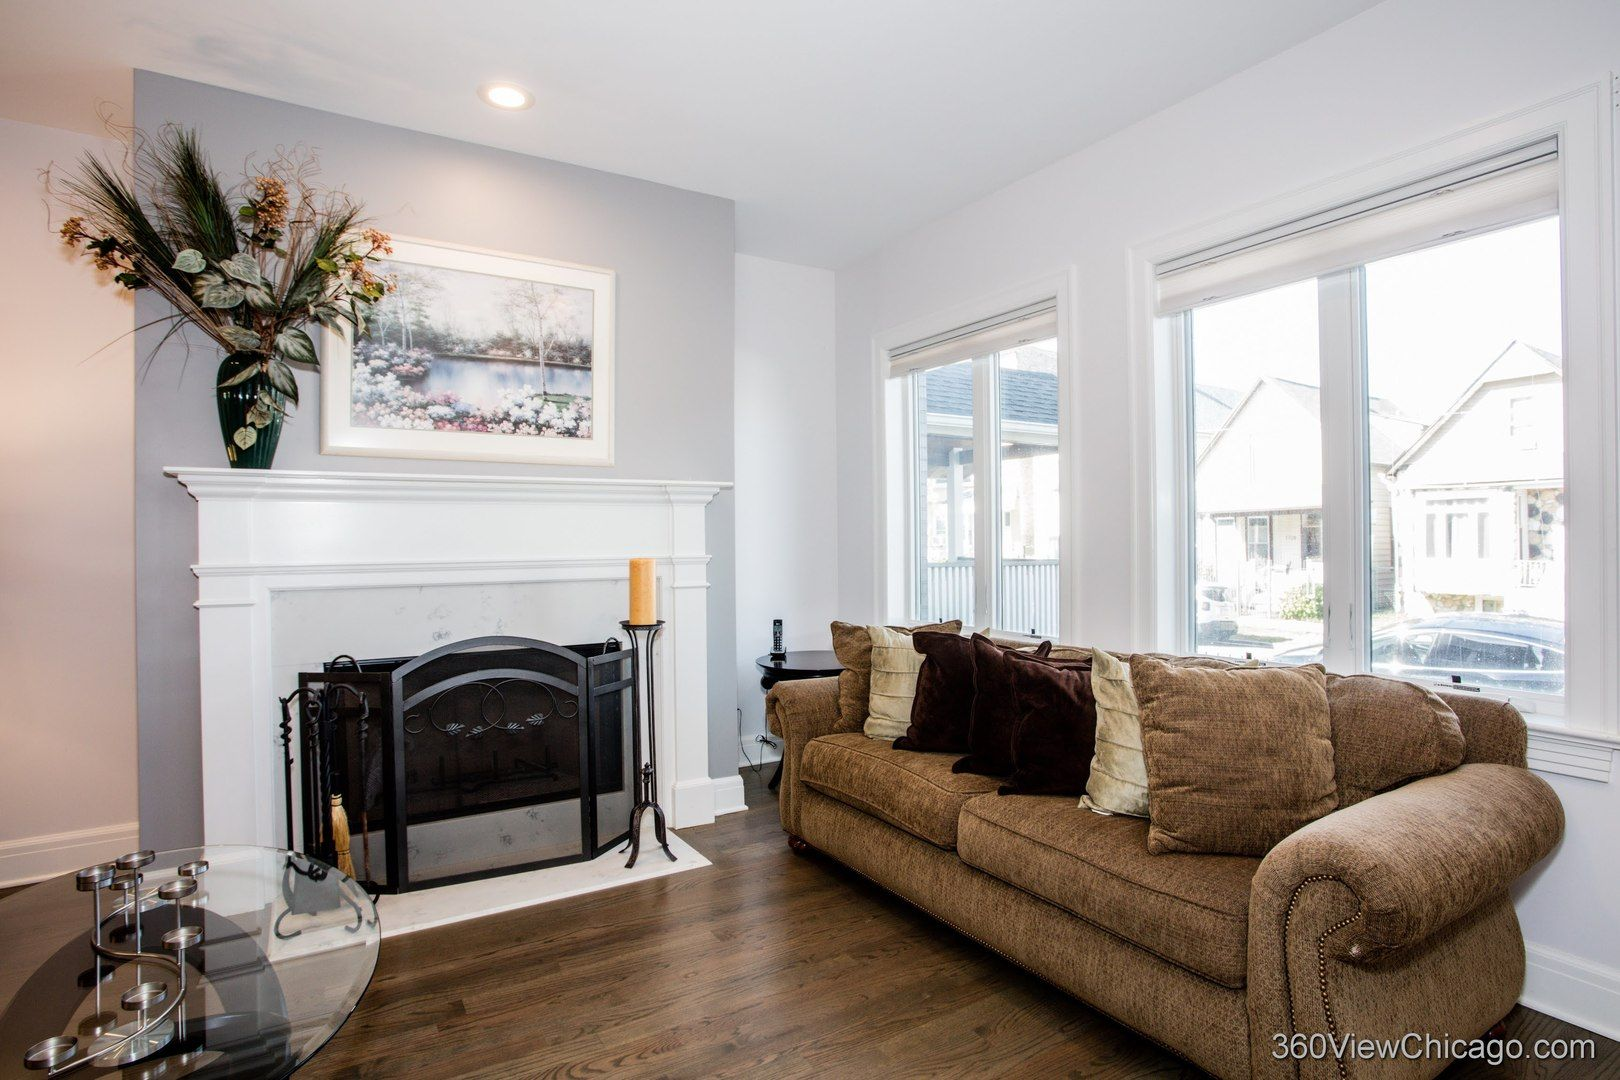 Photo 5: Photos: 1733 Troy Street in Chicago: CHI - Humboldt Park Residential for sale ()  : MLS®# 10911567